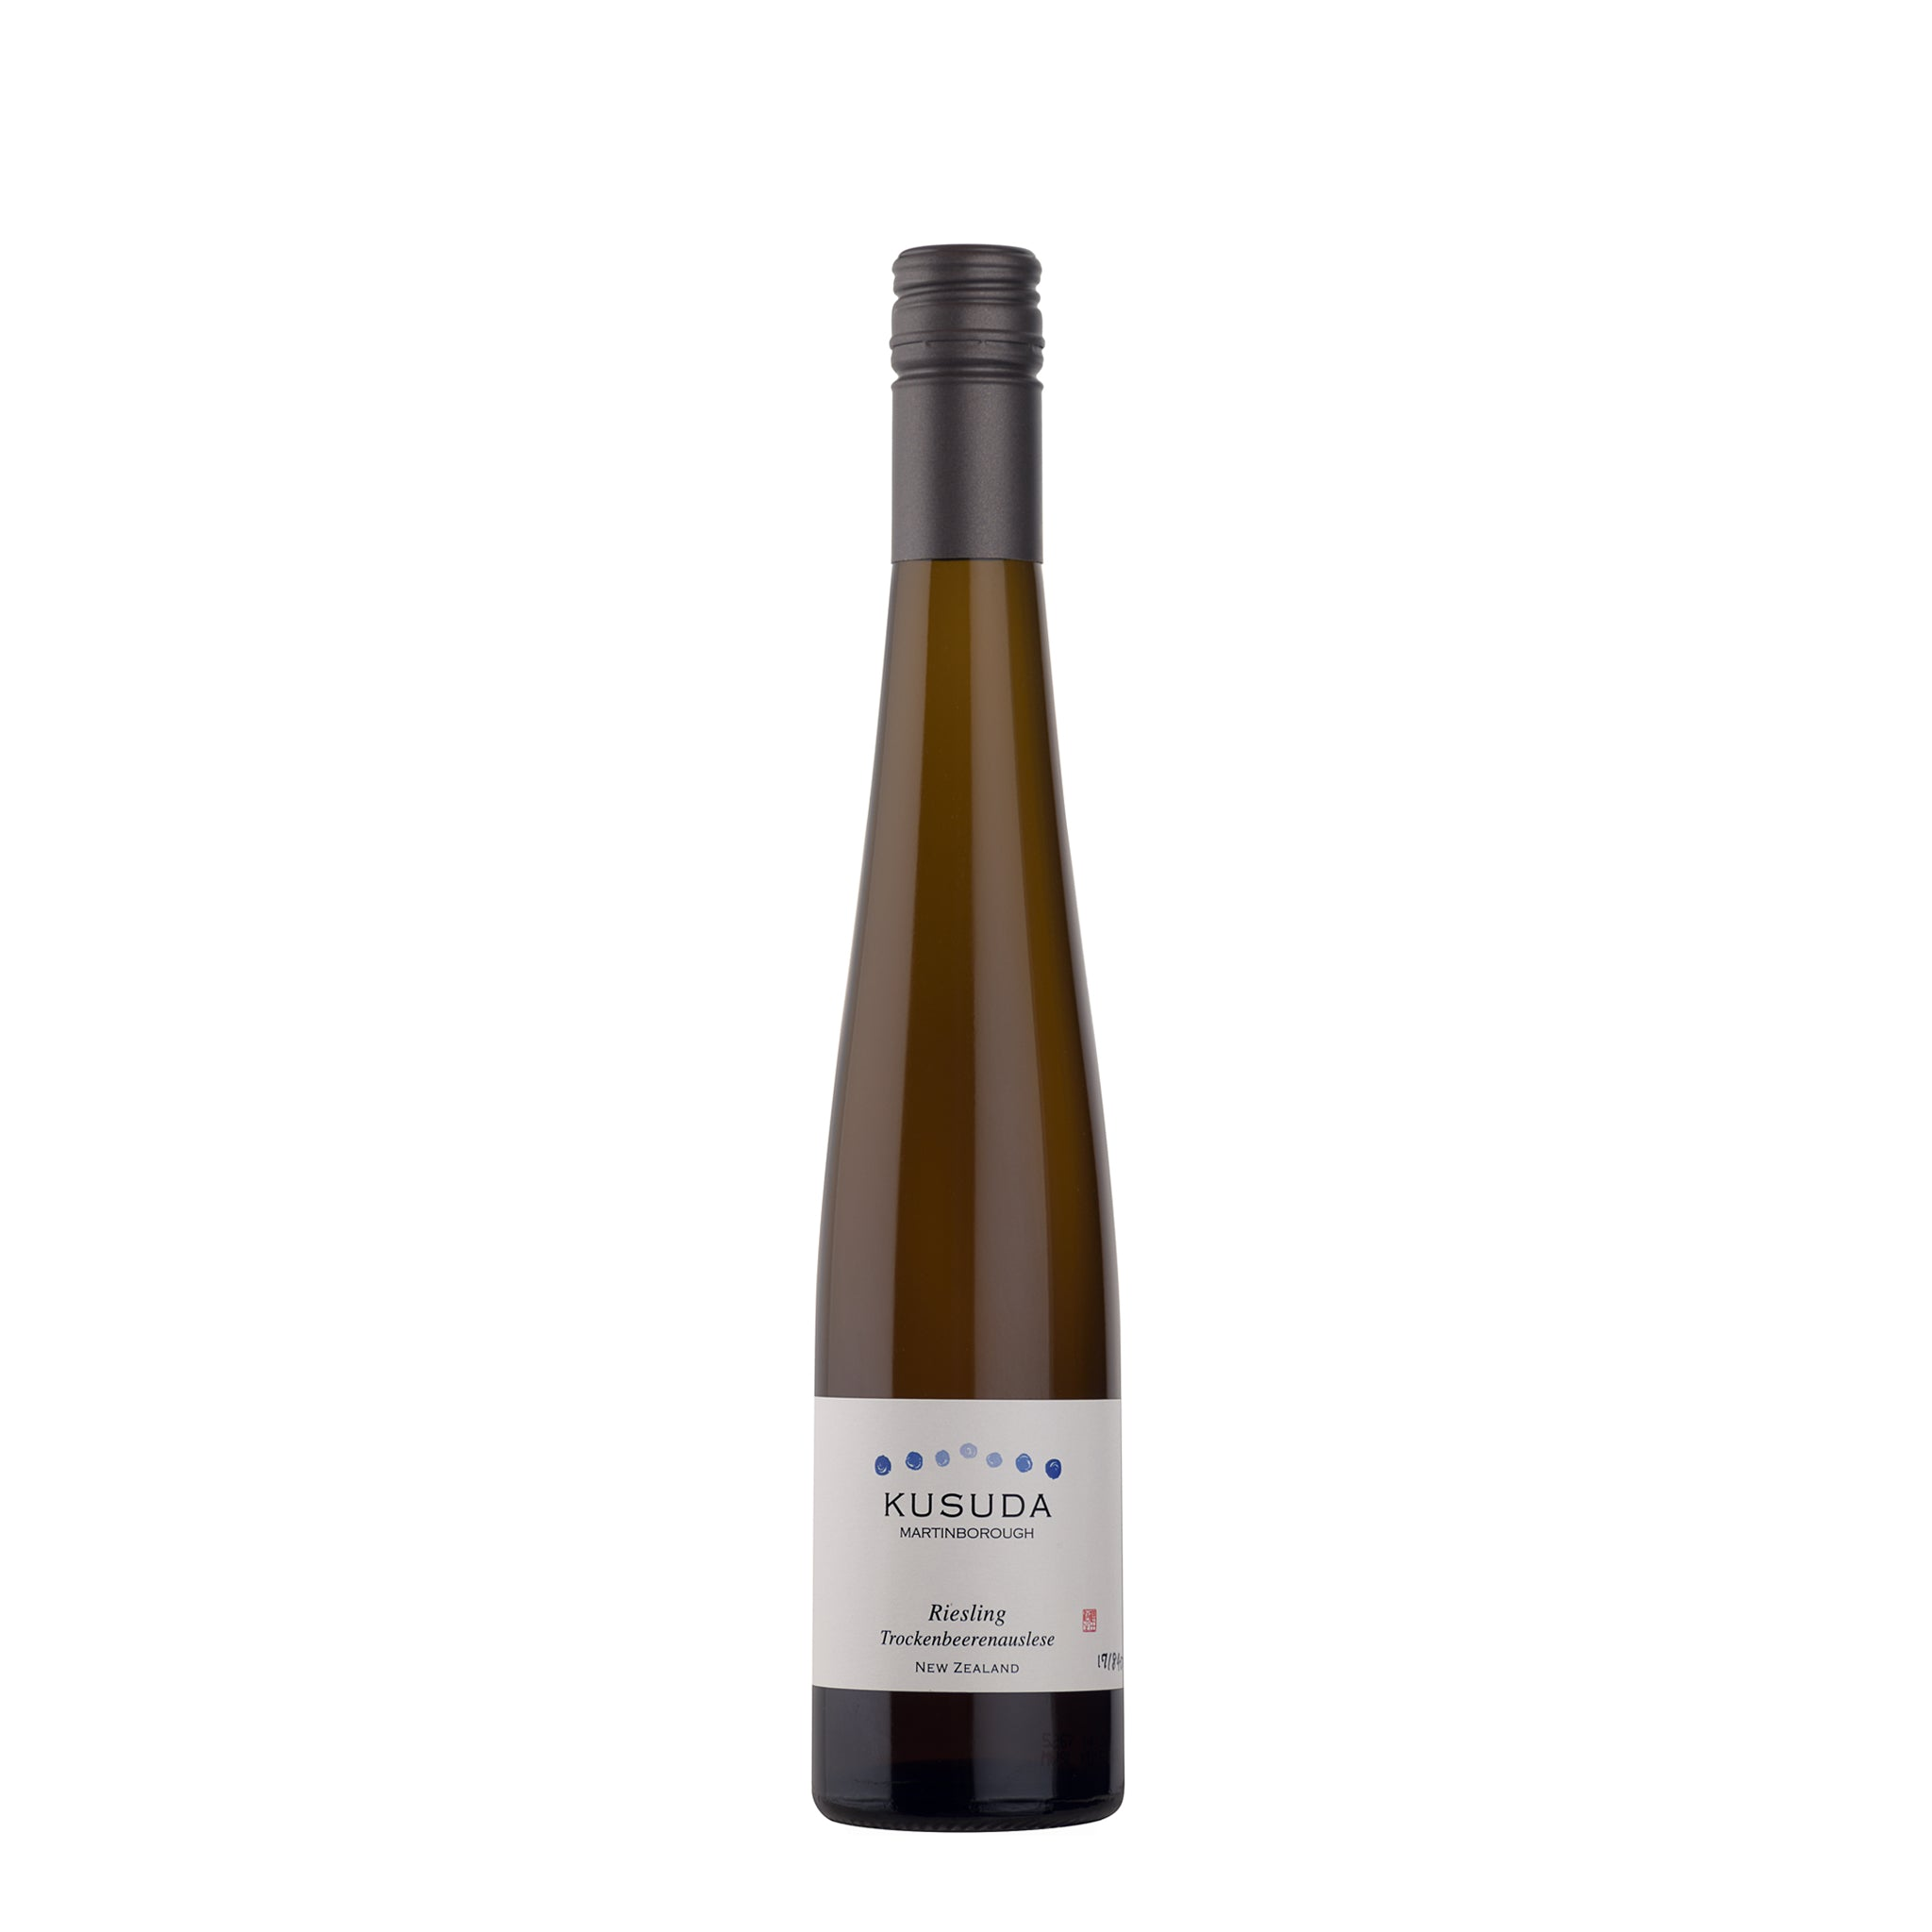 Kusuda Martinborough Riesling Trockenbeerenauslese 2018 375ml